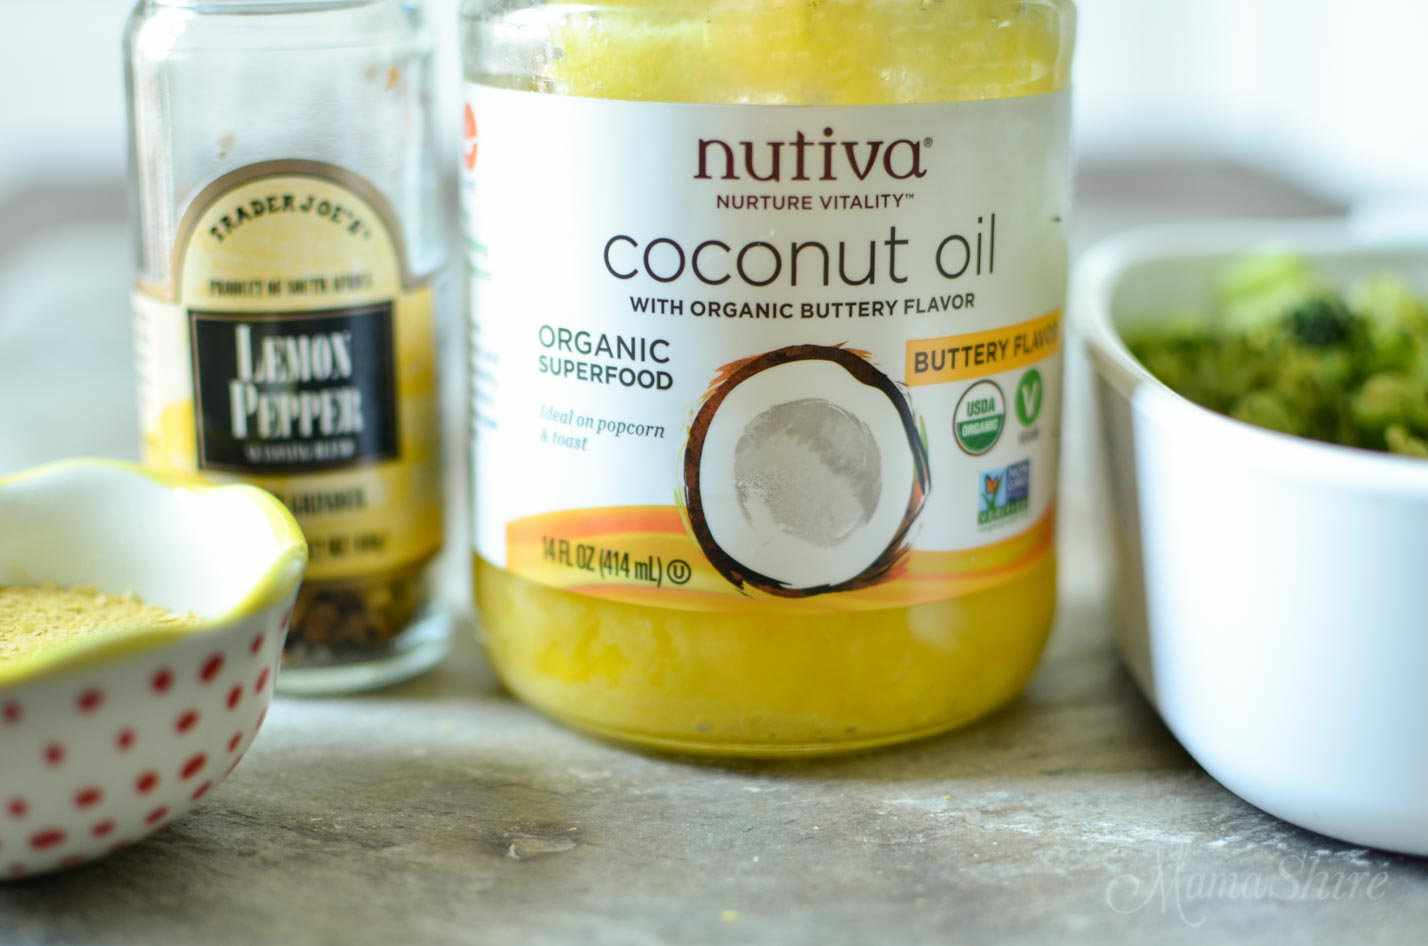 Nutiva Coconut Oil Butter Flavor